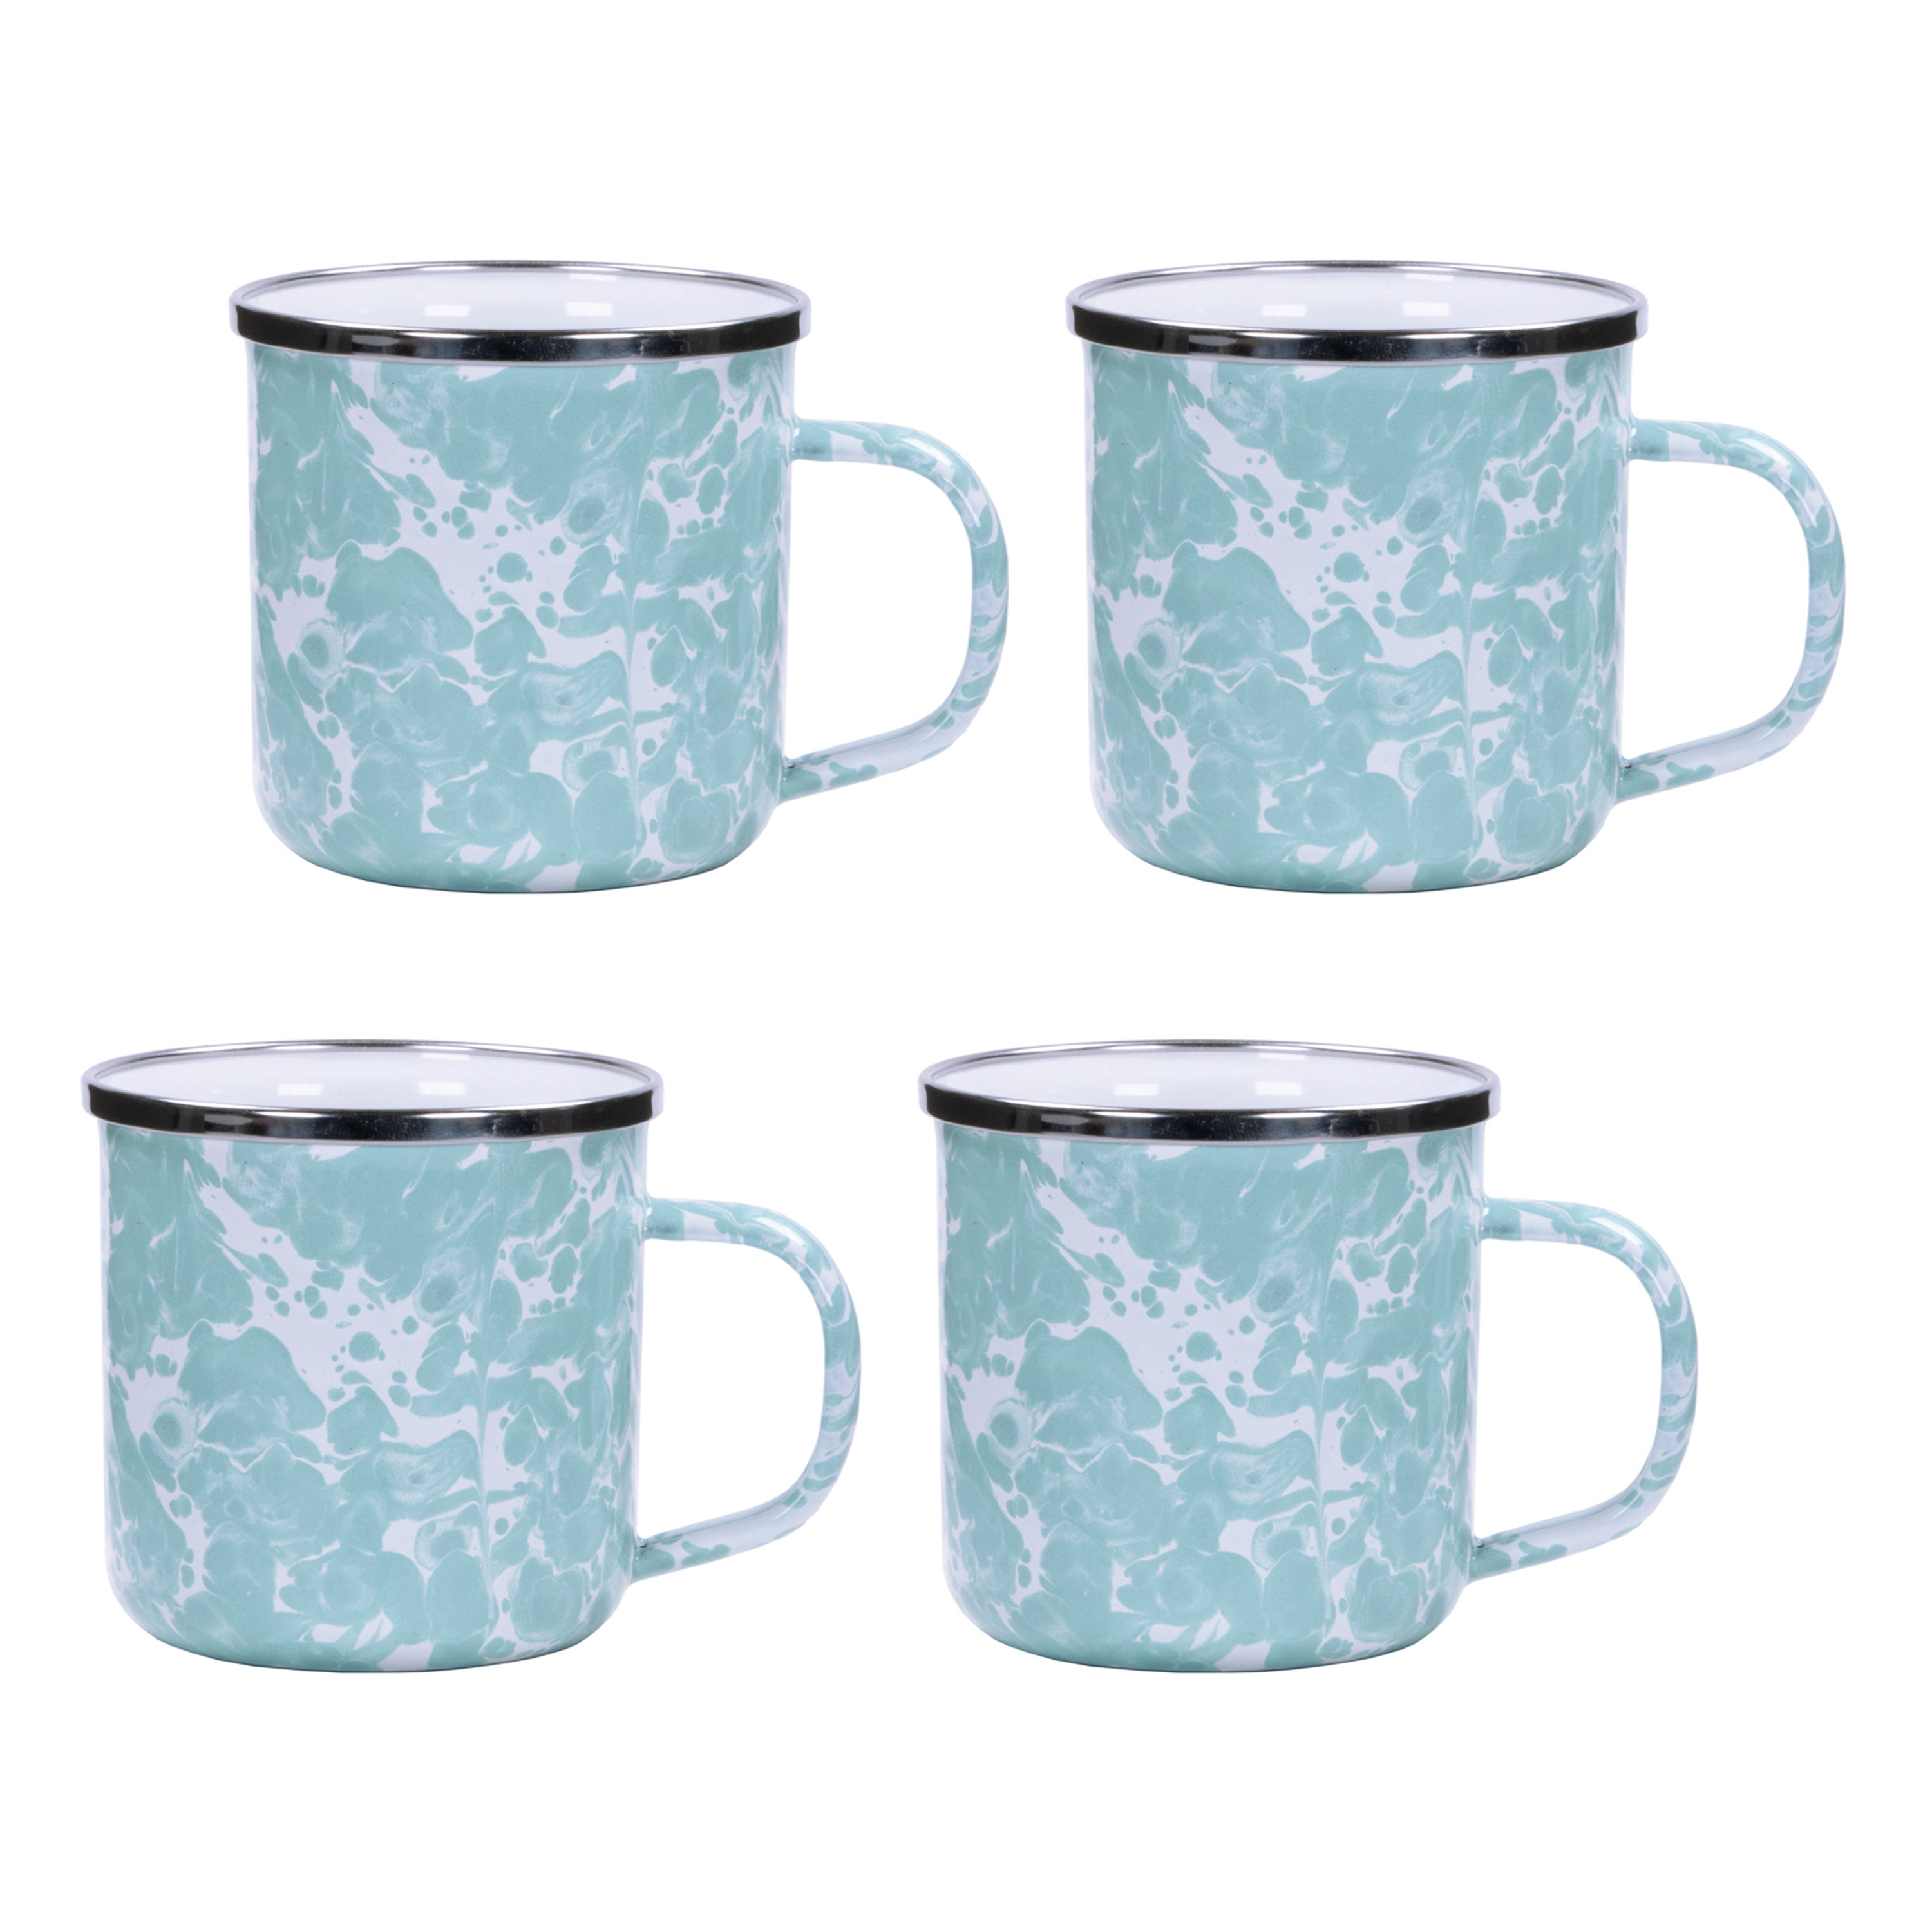 GL05S4 - Set of 4 Sea Glass Adult Mugs Image 1